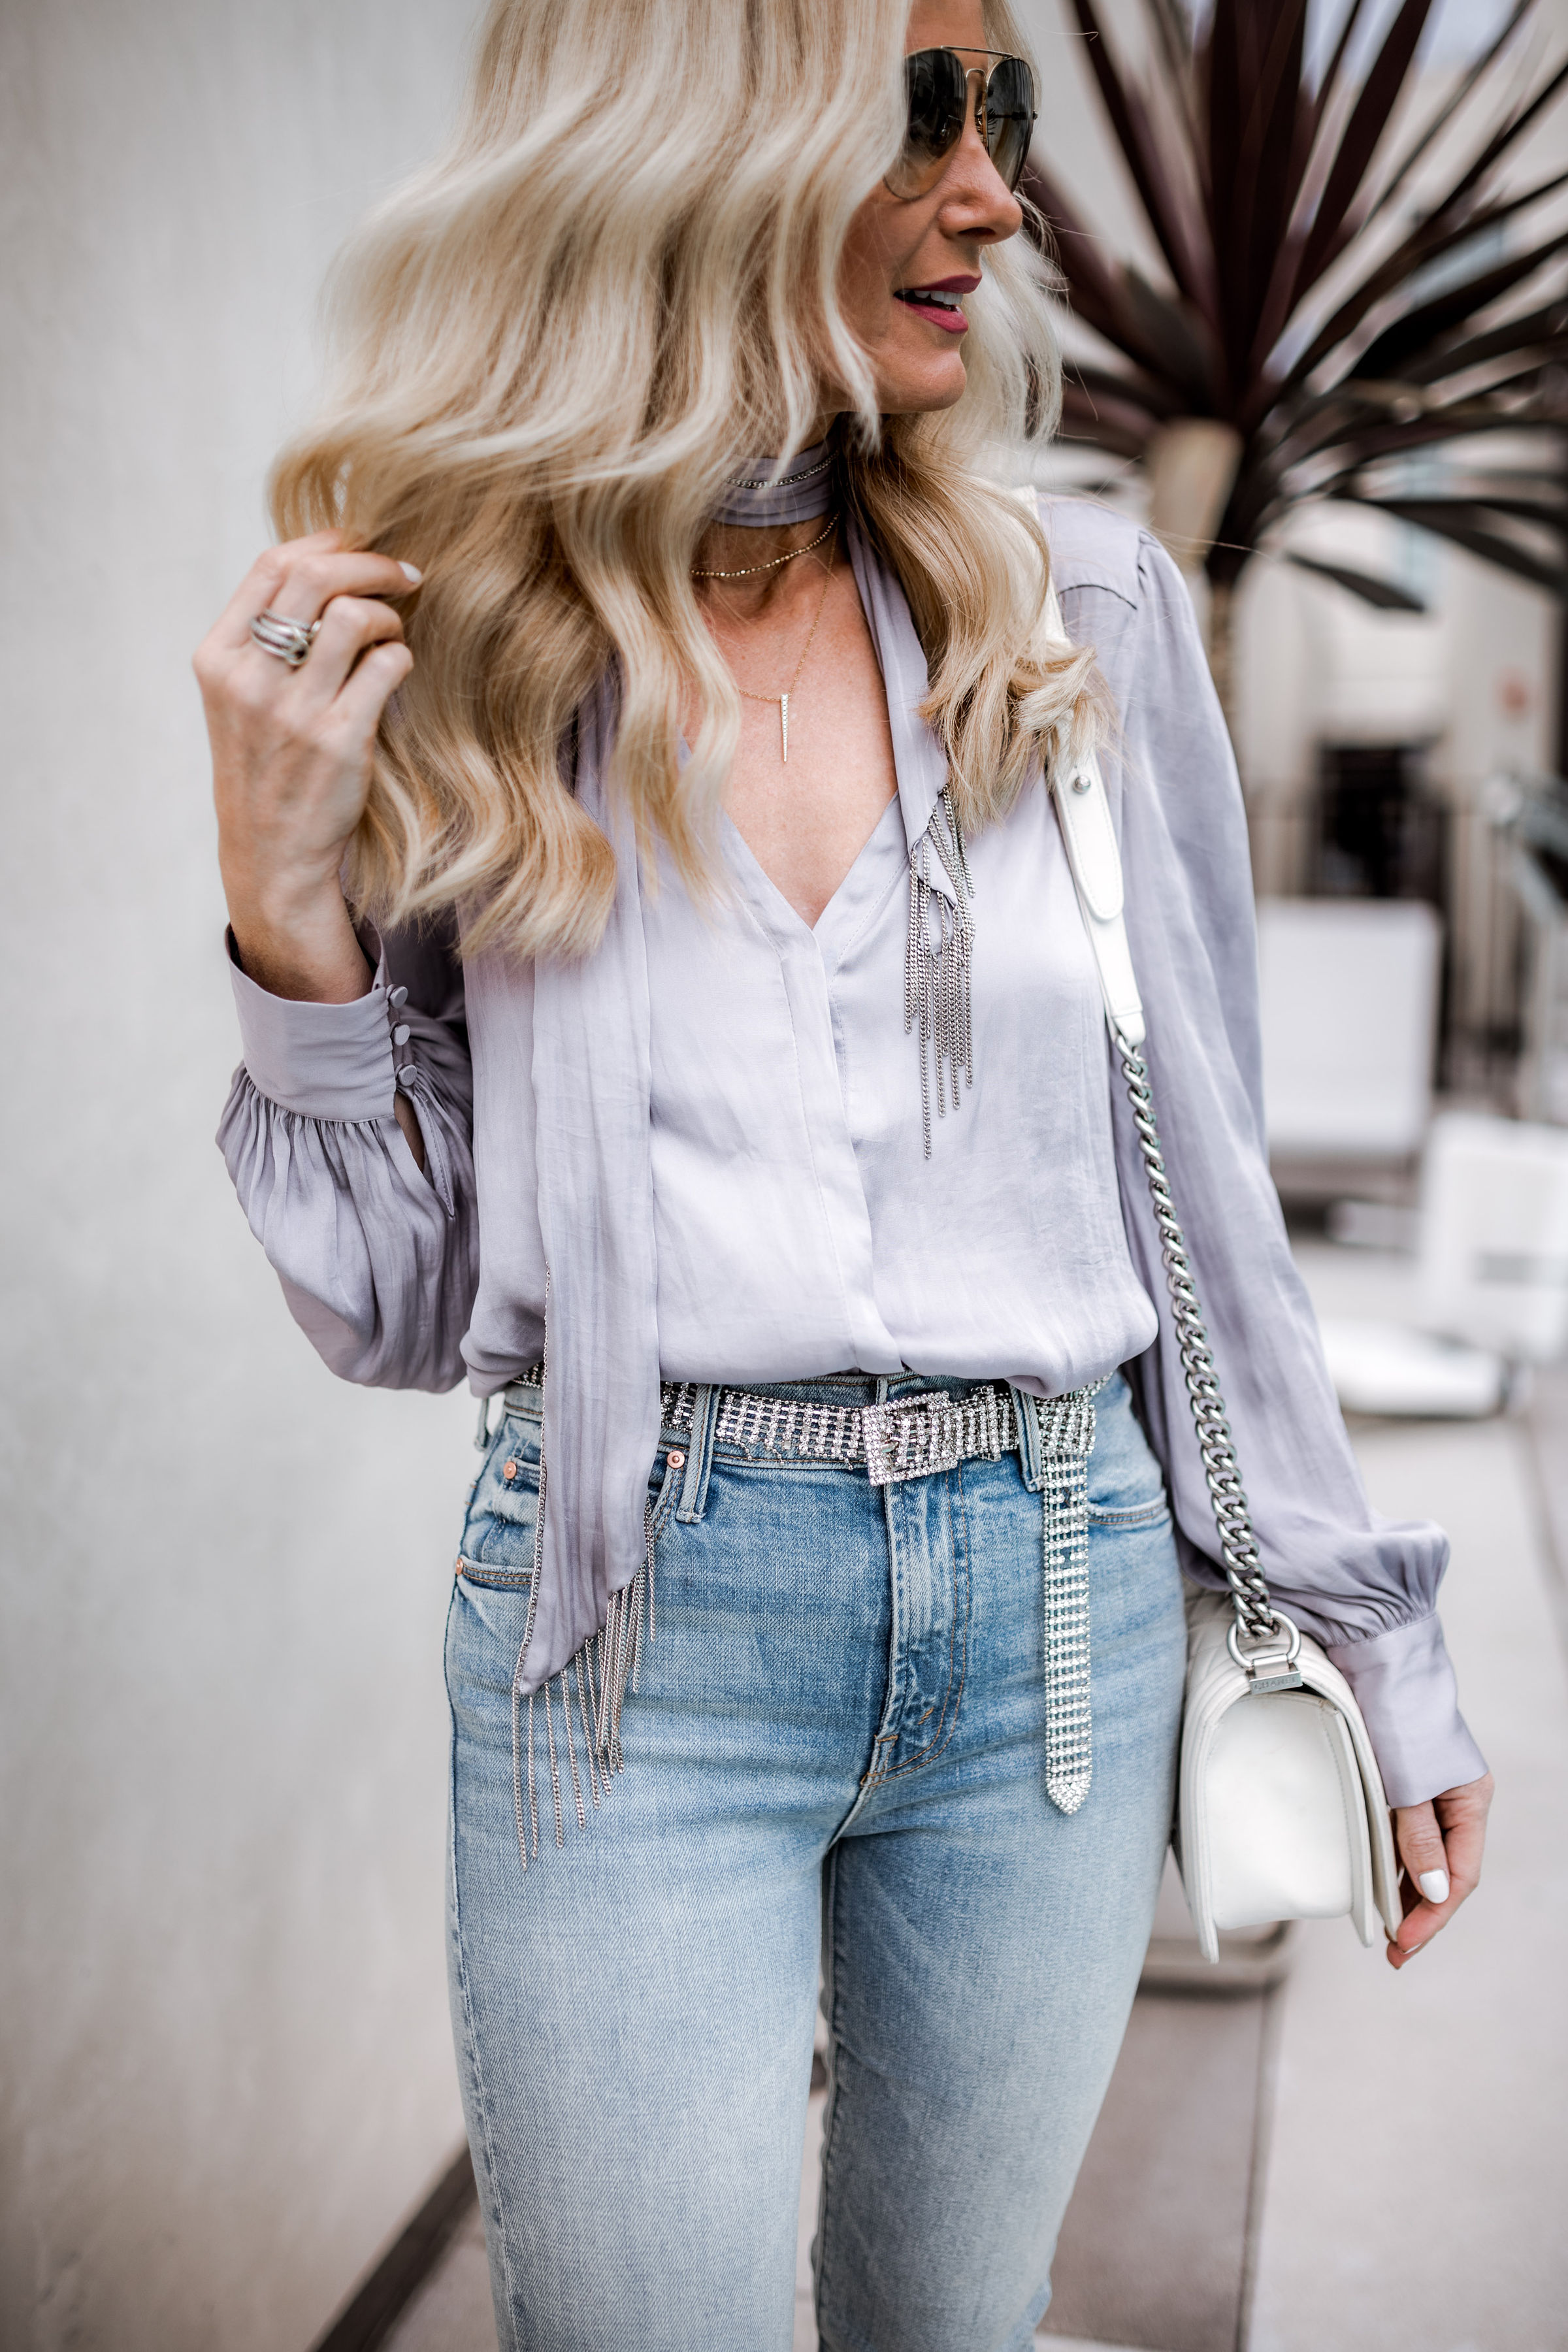 Dallas blonde woman wearing satin top and Mother denim skinny jeans